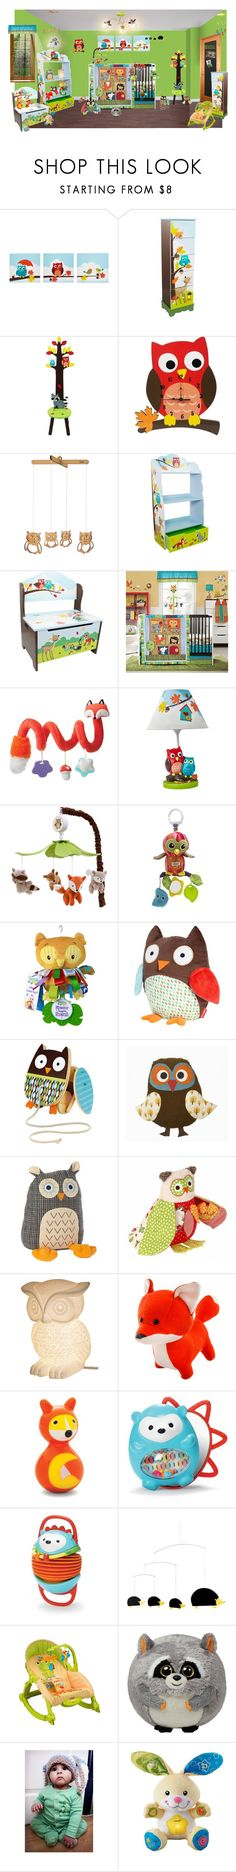 """""""just a hoot"""" by sterlingkitten on Polyvore featuring interior, interiors, interior design, home, home decor, interior decorating, Teamson Design, Manhattan Toy, Animal Planet and Lamaze"""